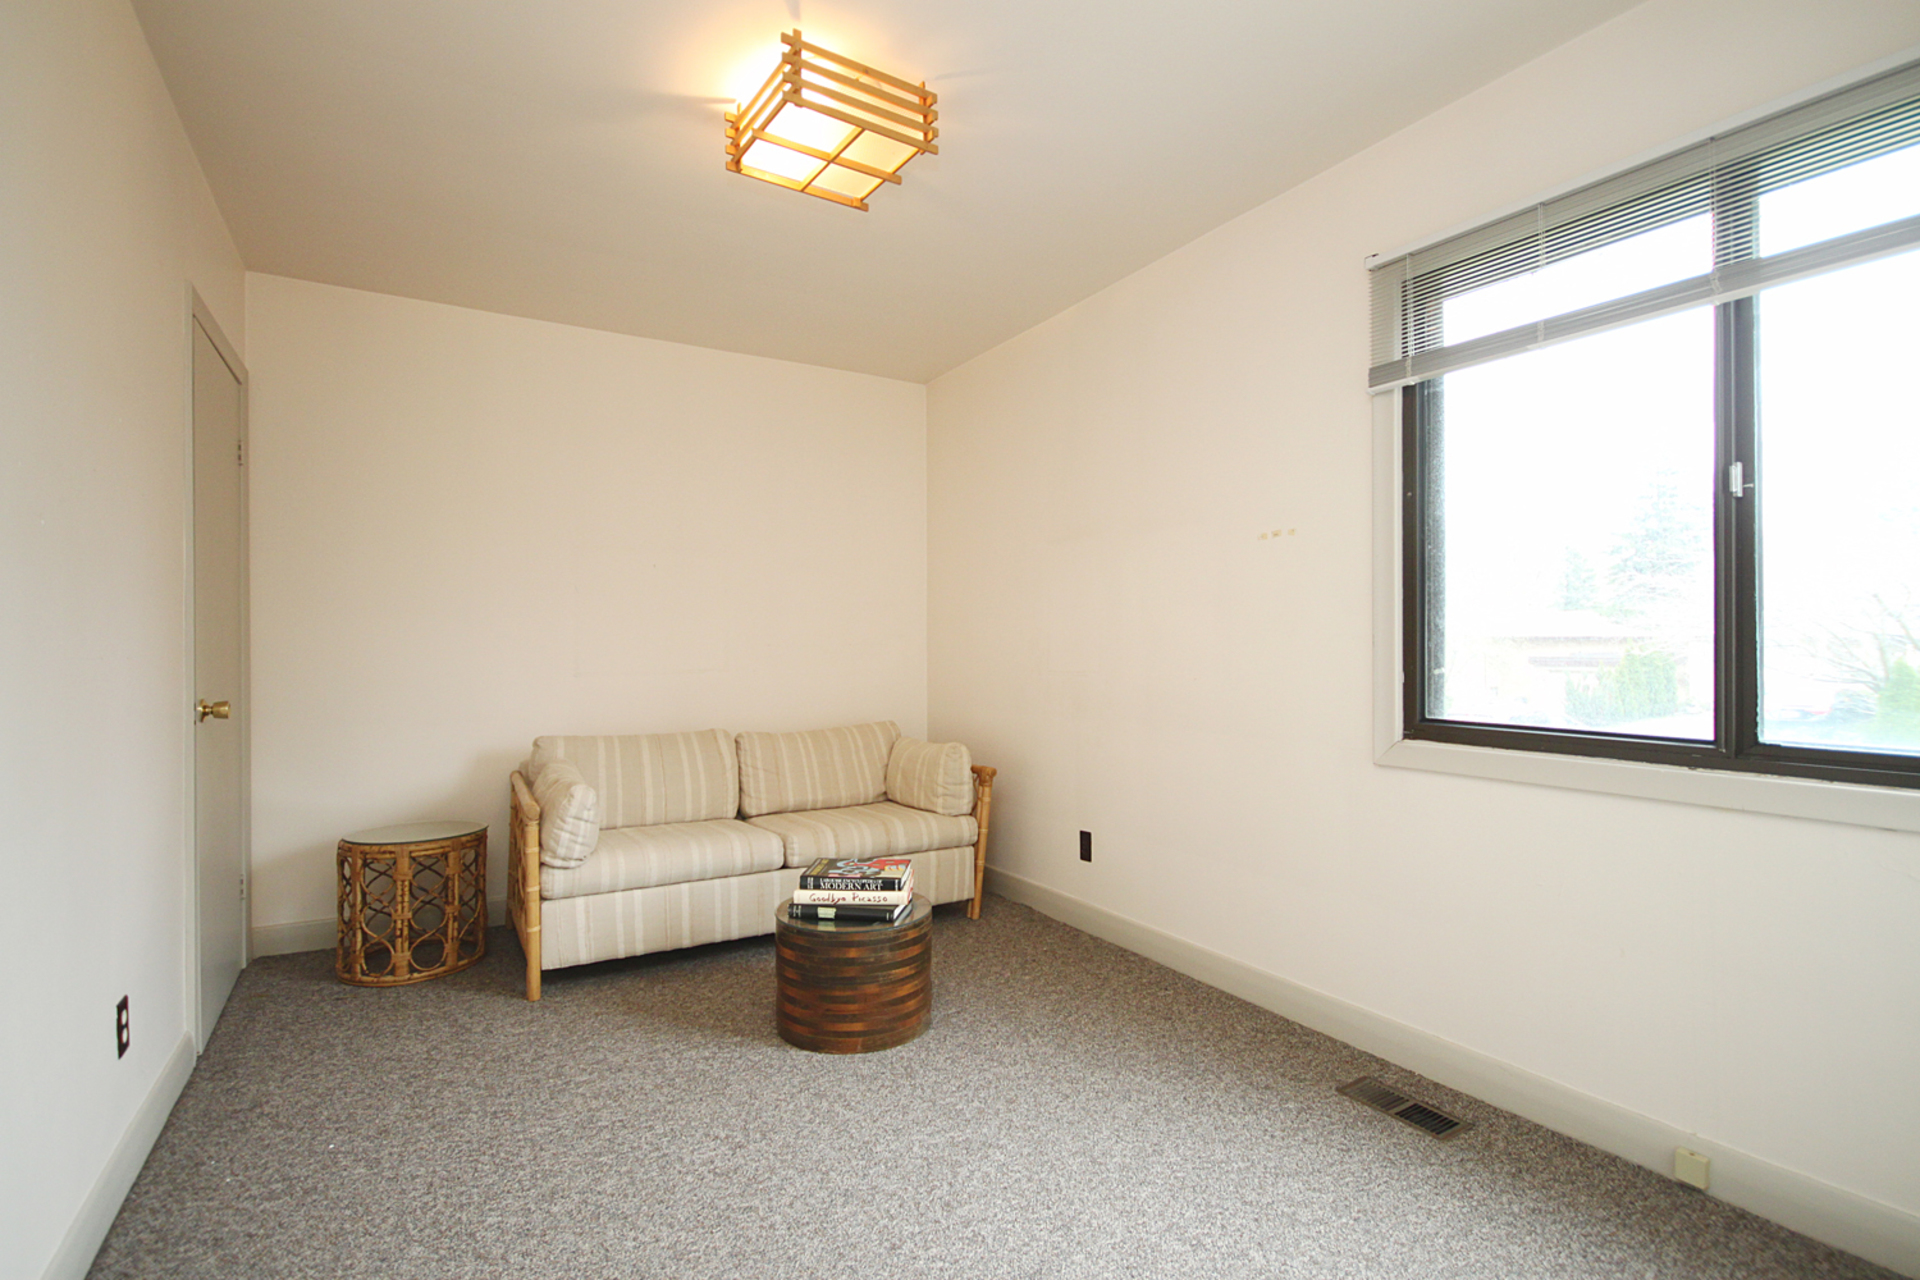 Bedroom at 16 Bradgate Road, Banbury-Don Mills, Toronto